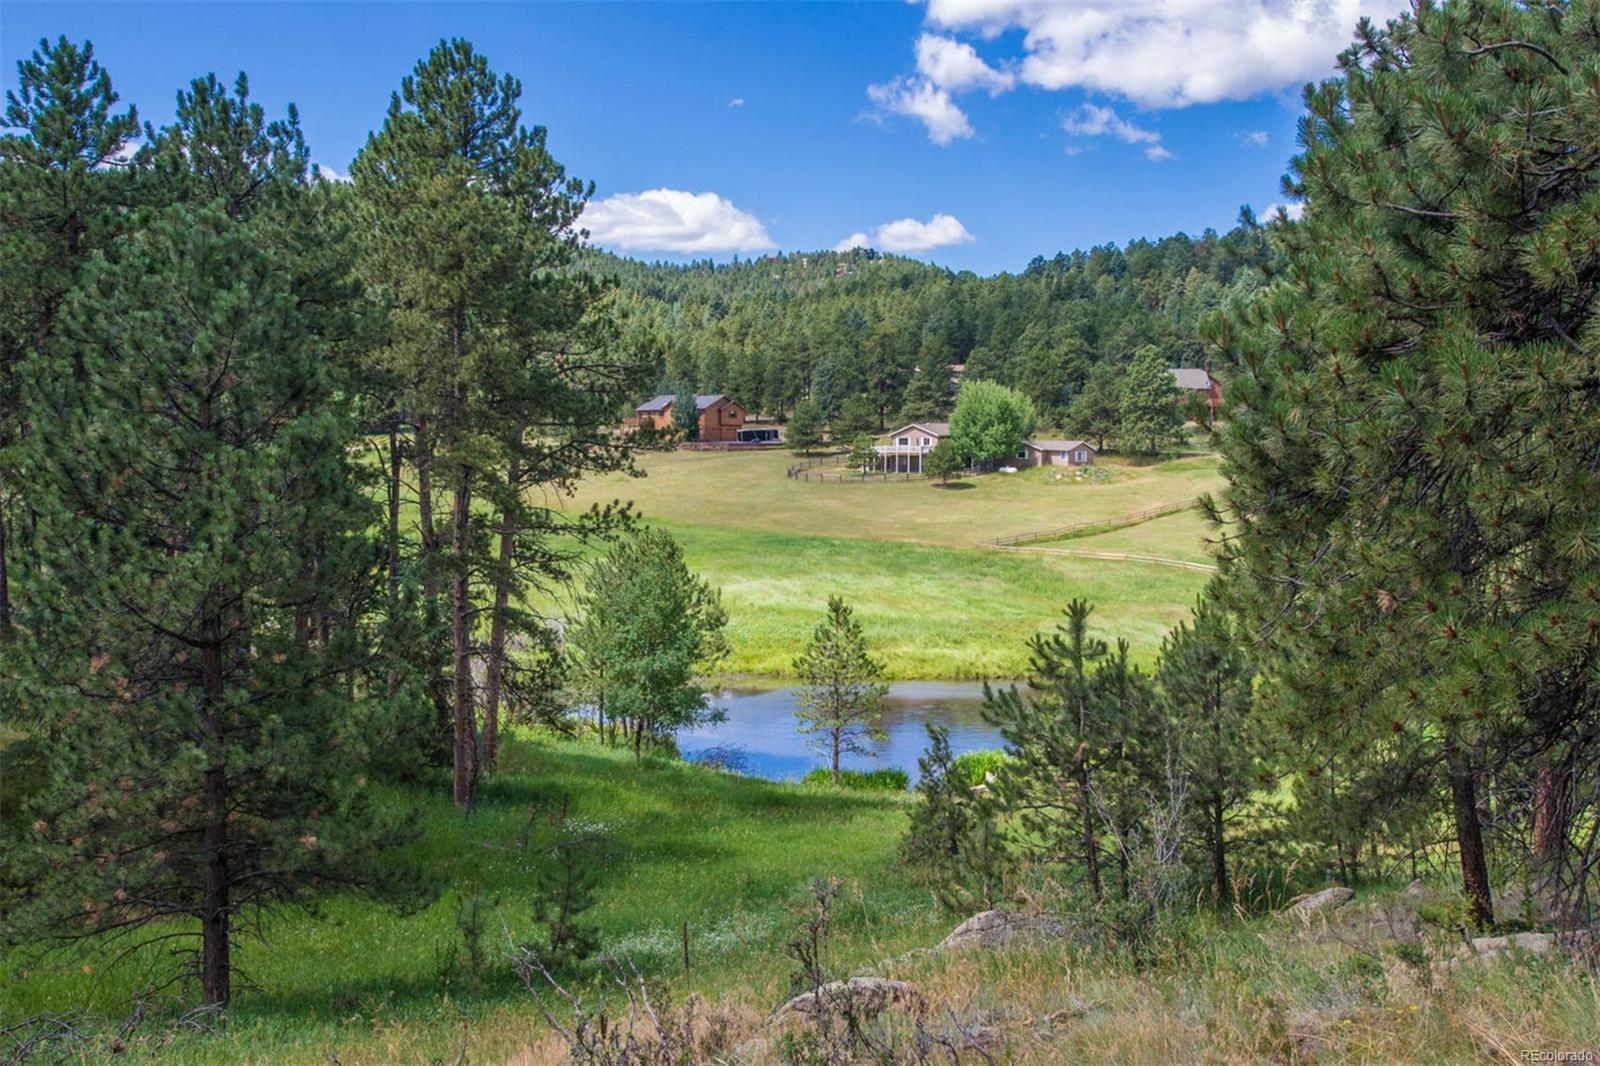 TBD Lot 12, 27 & 28 Cragmont Drive, Evergreen, CO 80439 - Evergreen, CO real estate listing